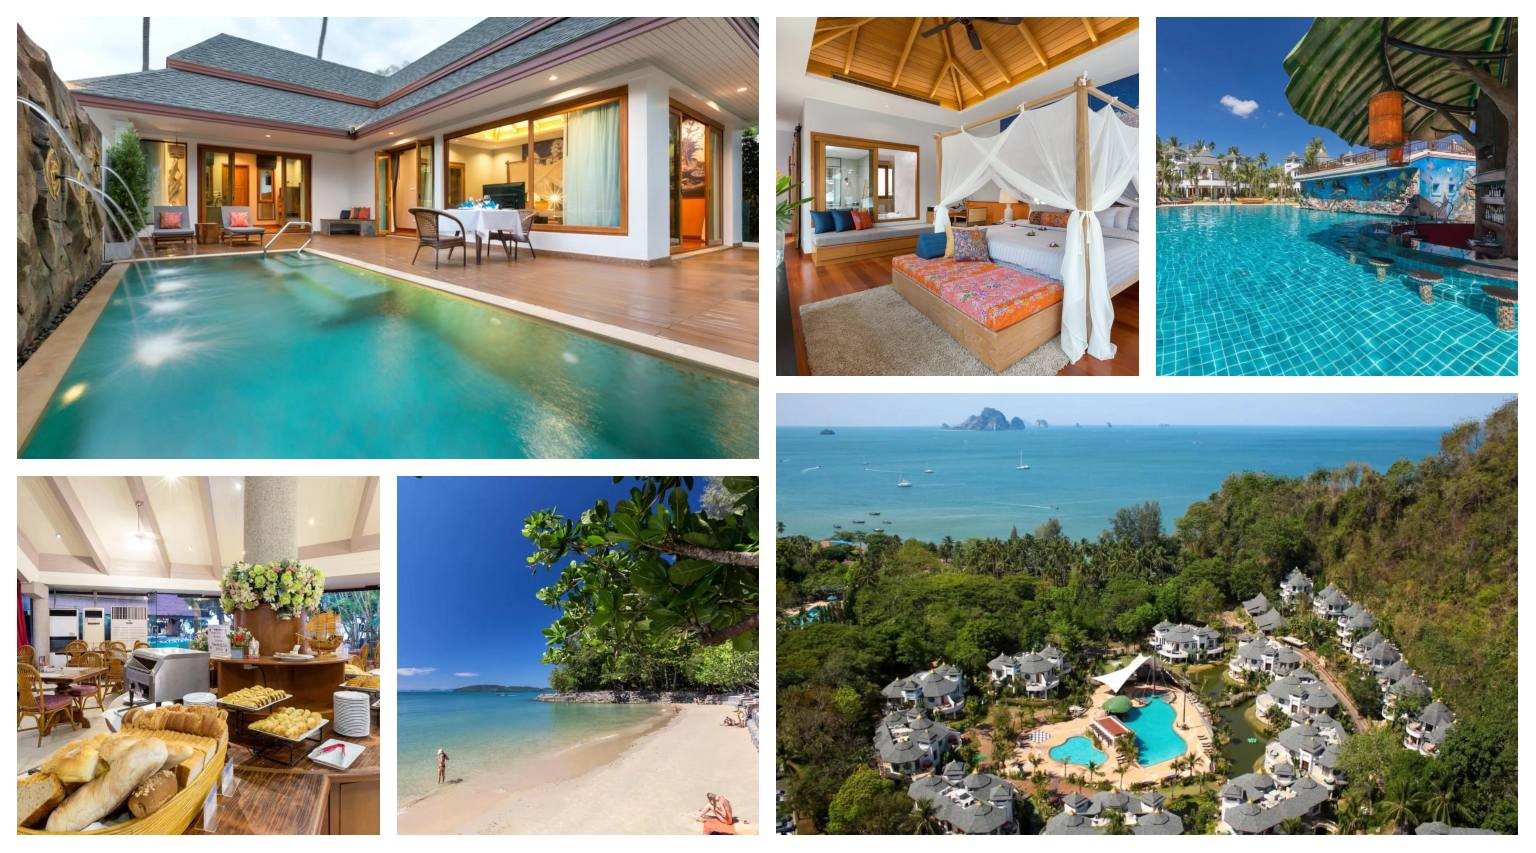 Collage Krabi Resort in Ao Nang, Thailand